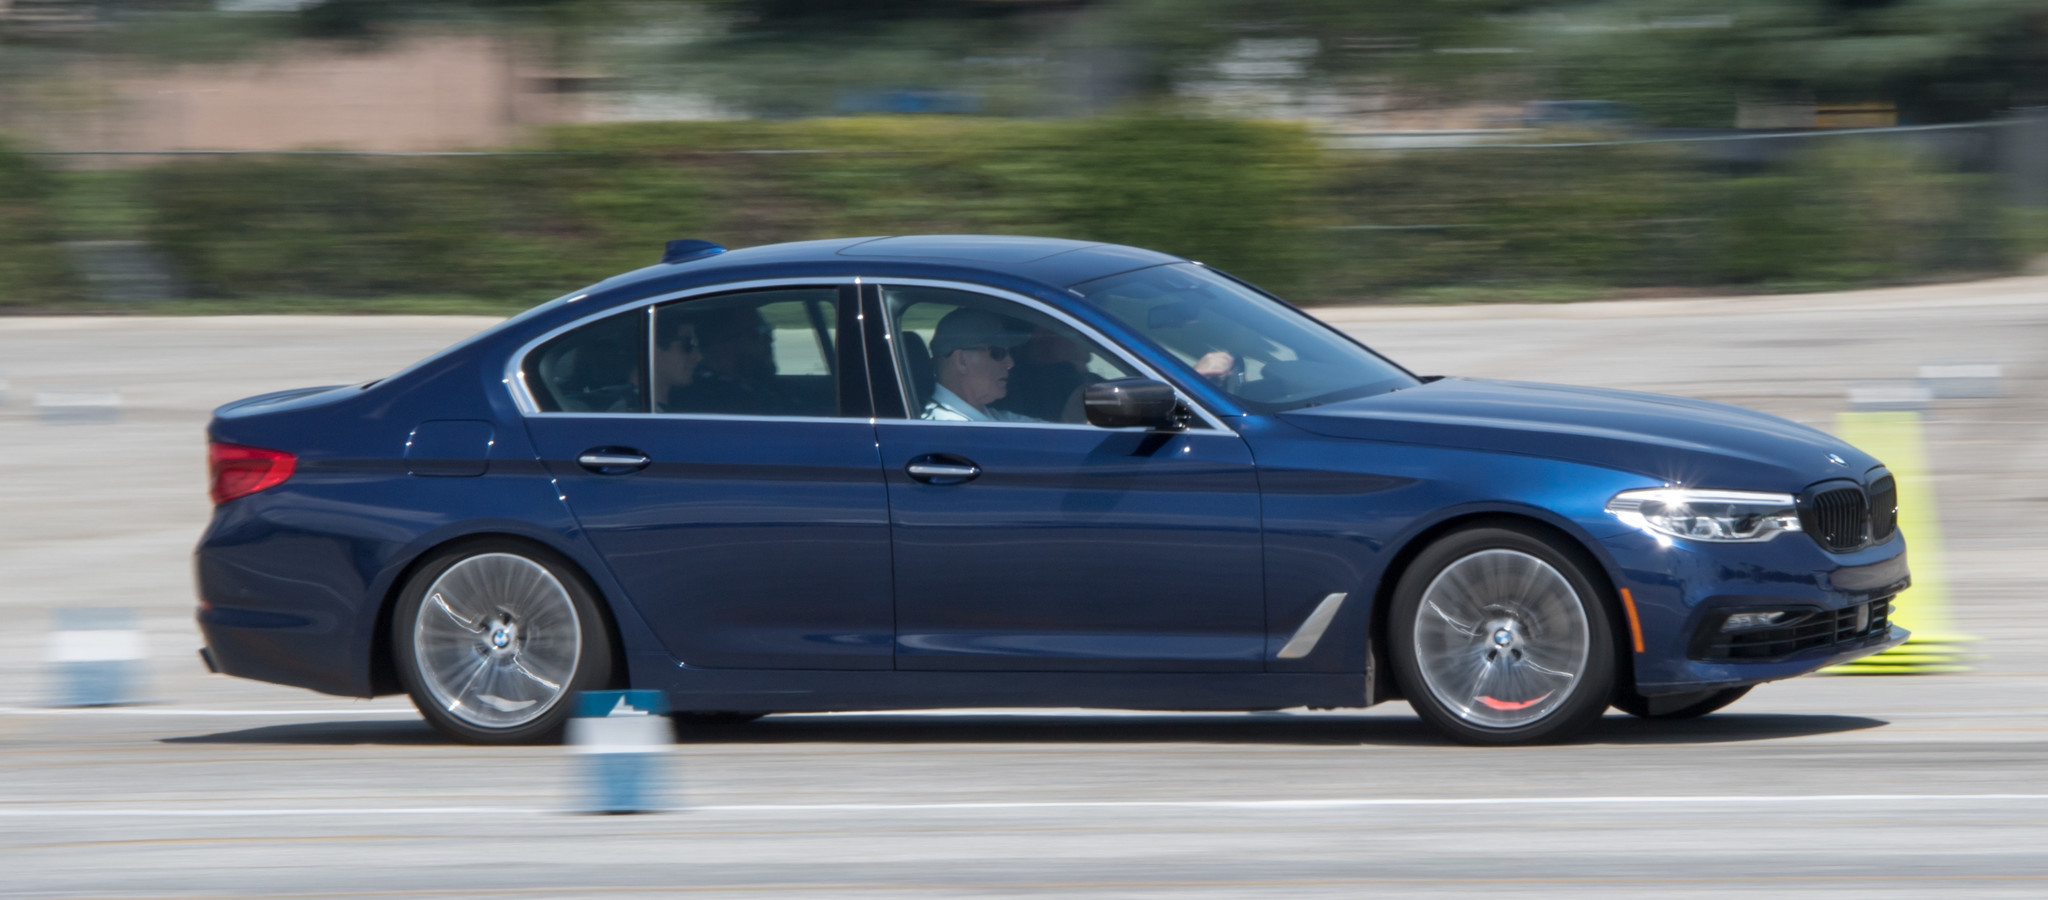 At speed in a BMW 5 Series sedan on the autocross course